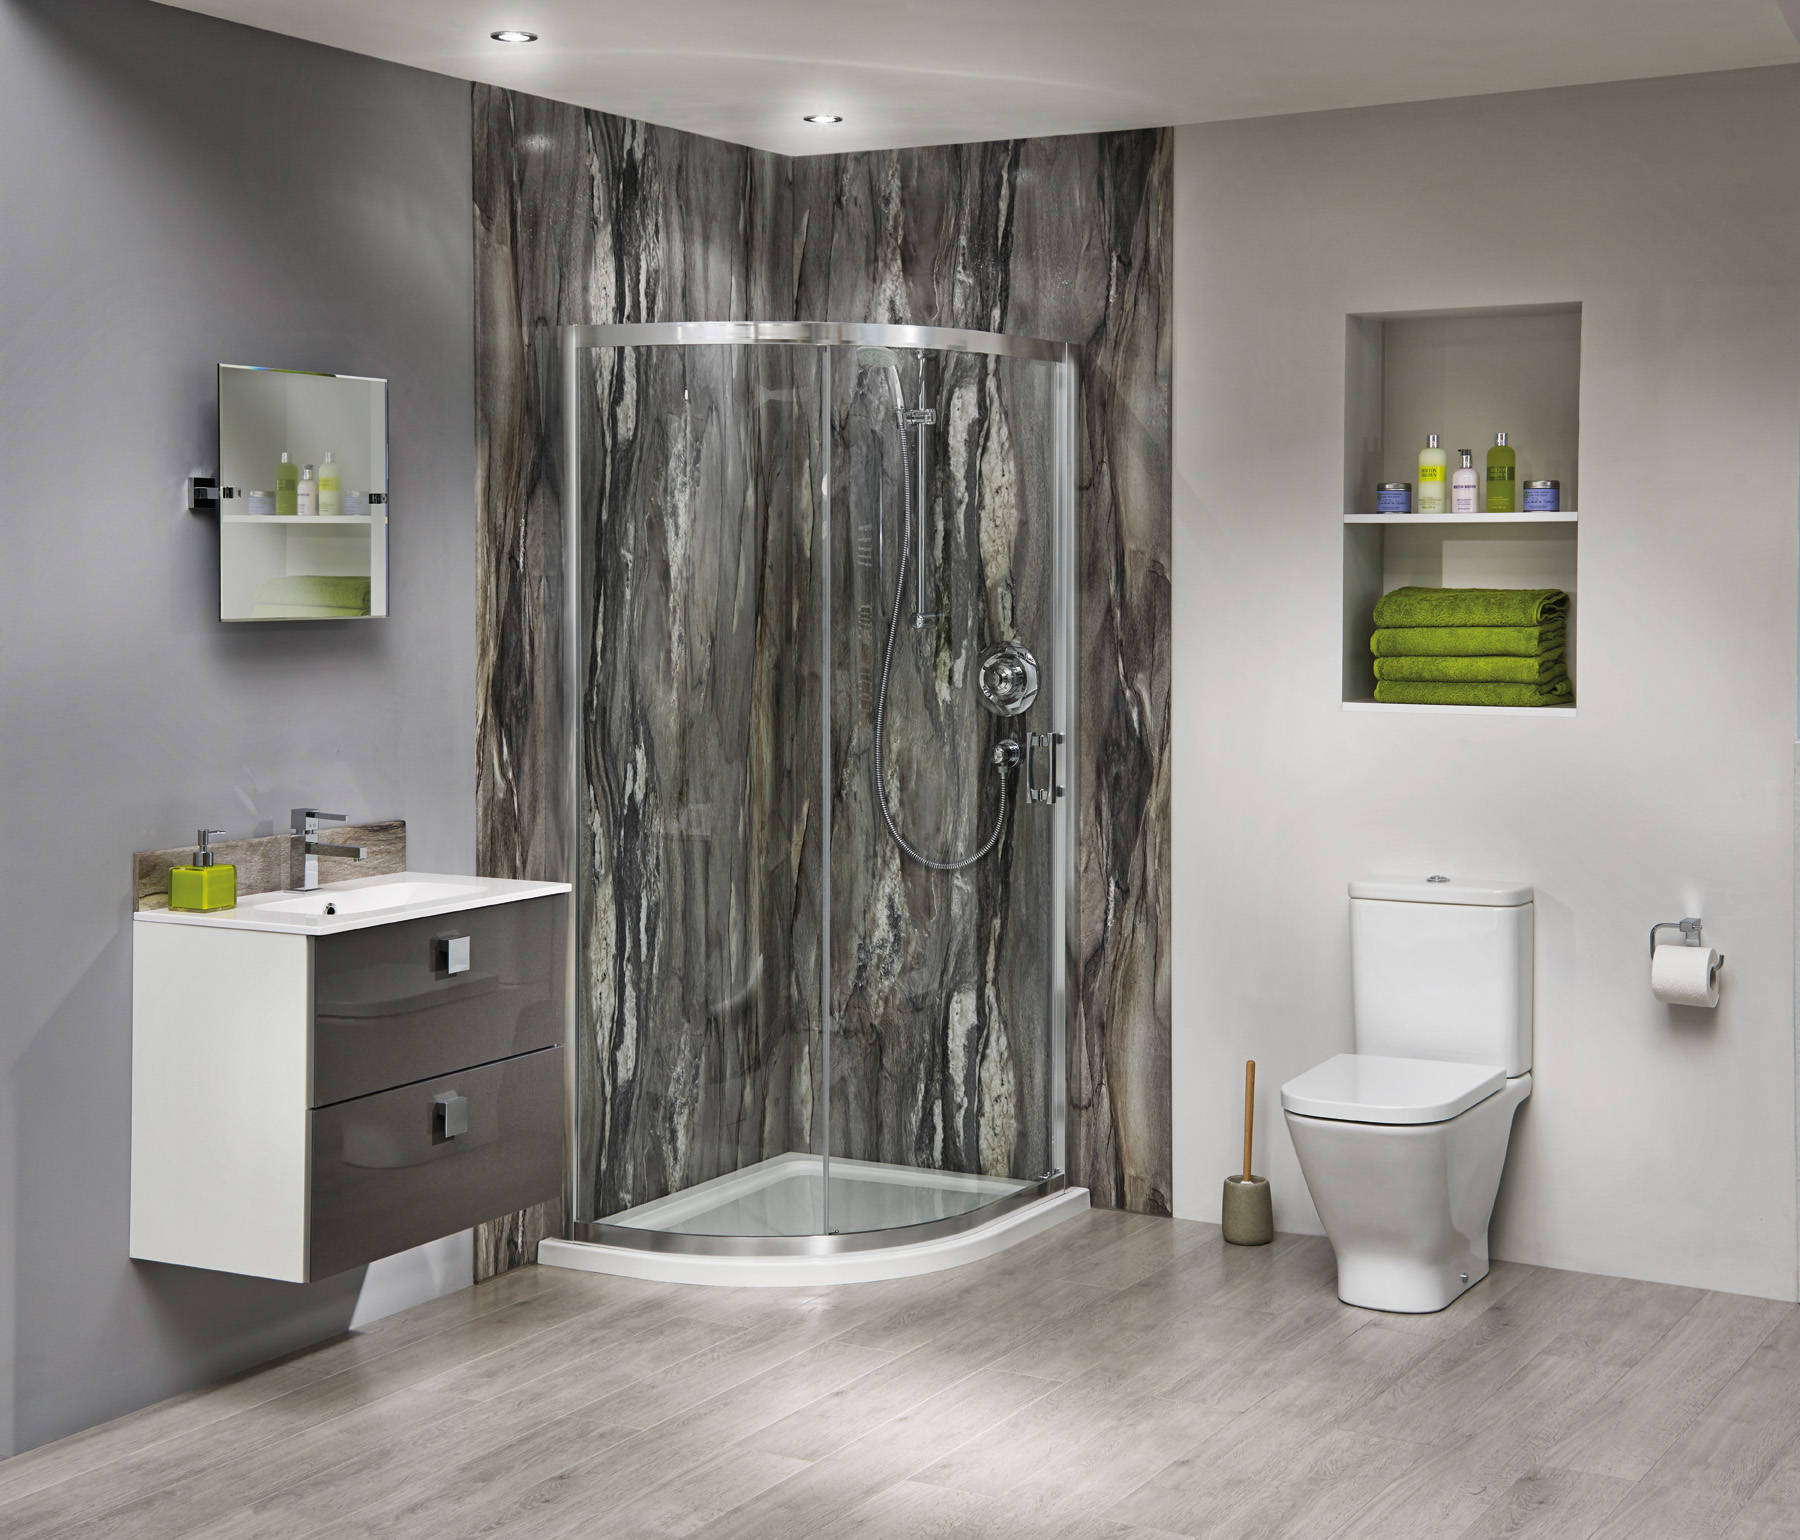 Bushboards Nuance bathroom wall panelling in Dolce Vita 02 LS LR